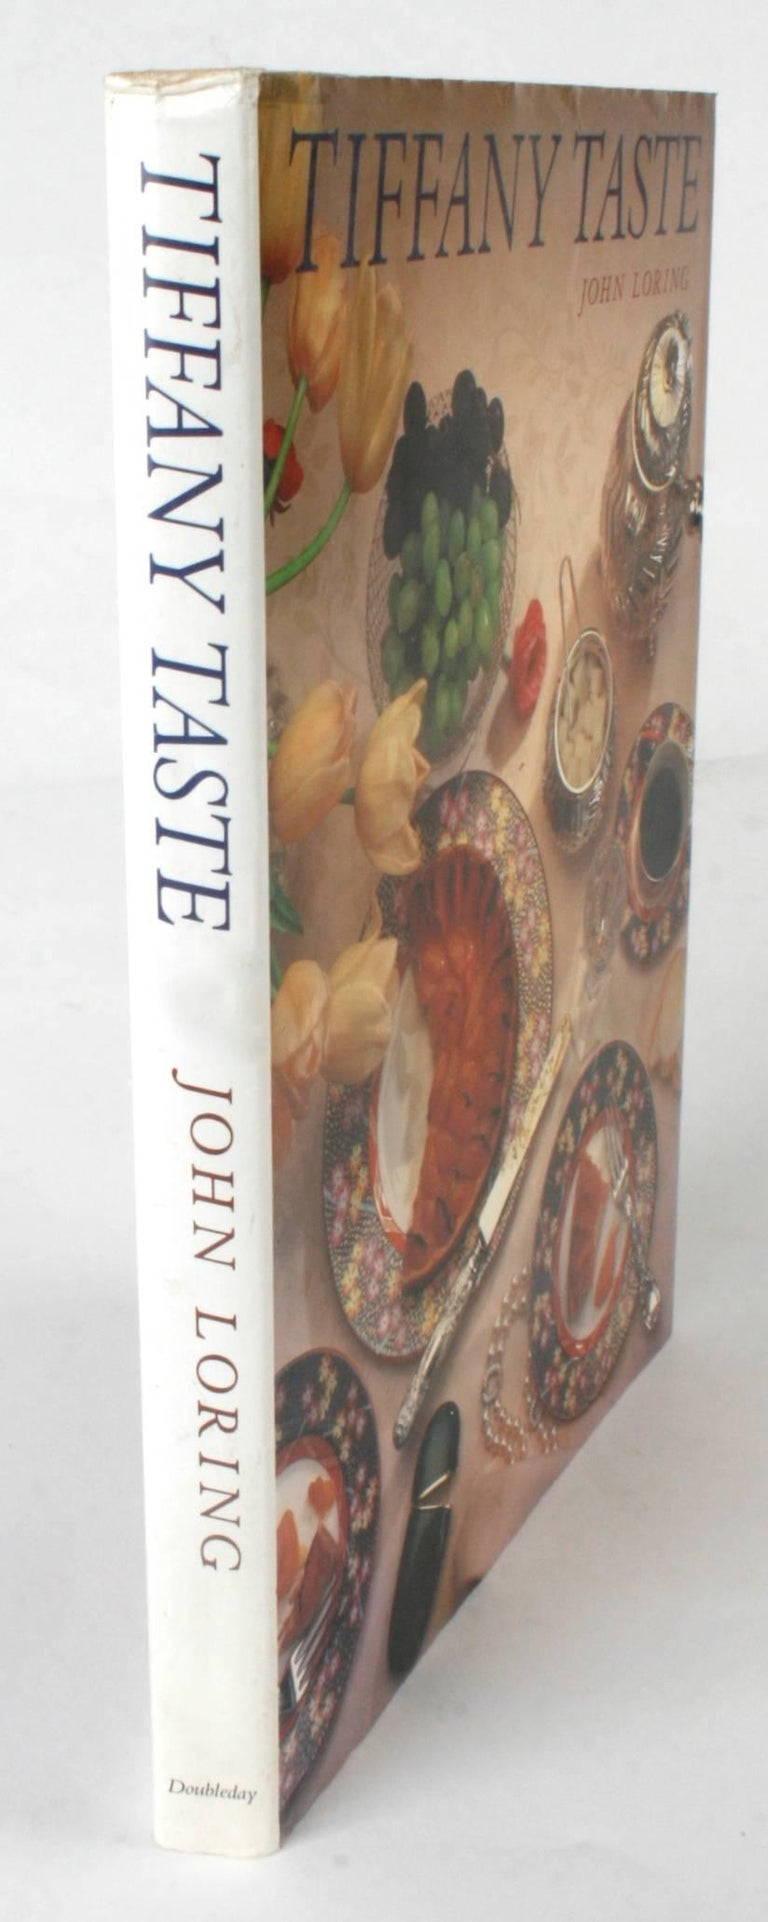 Tiffany Taste by John Loring, First Edition For Sale at 1stdibs